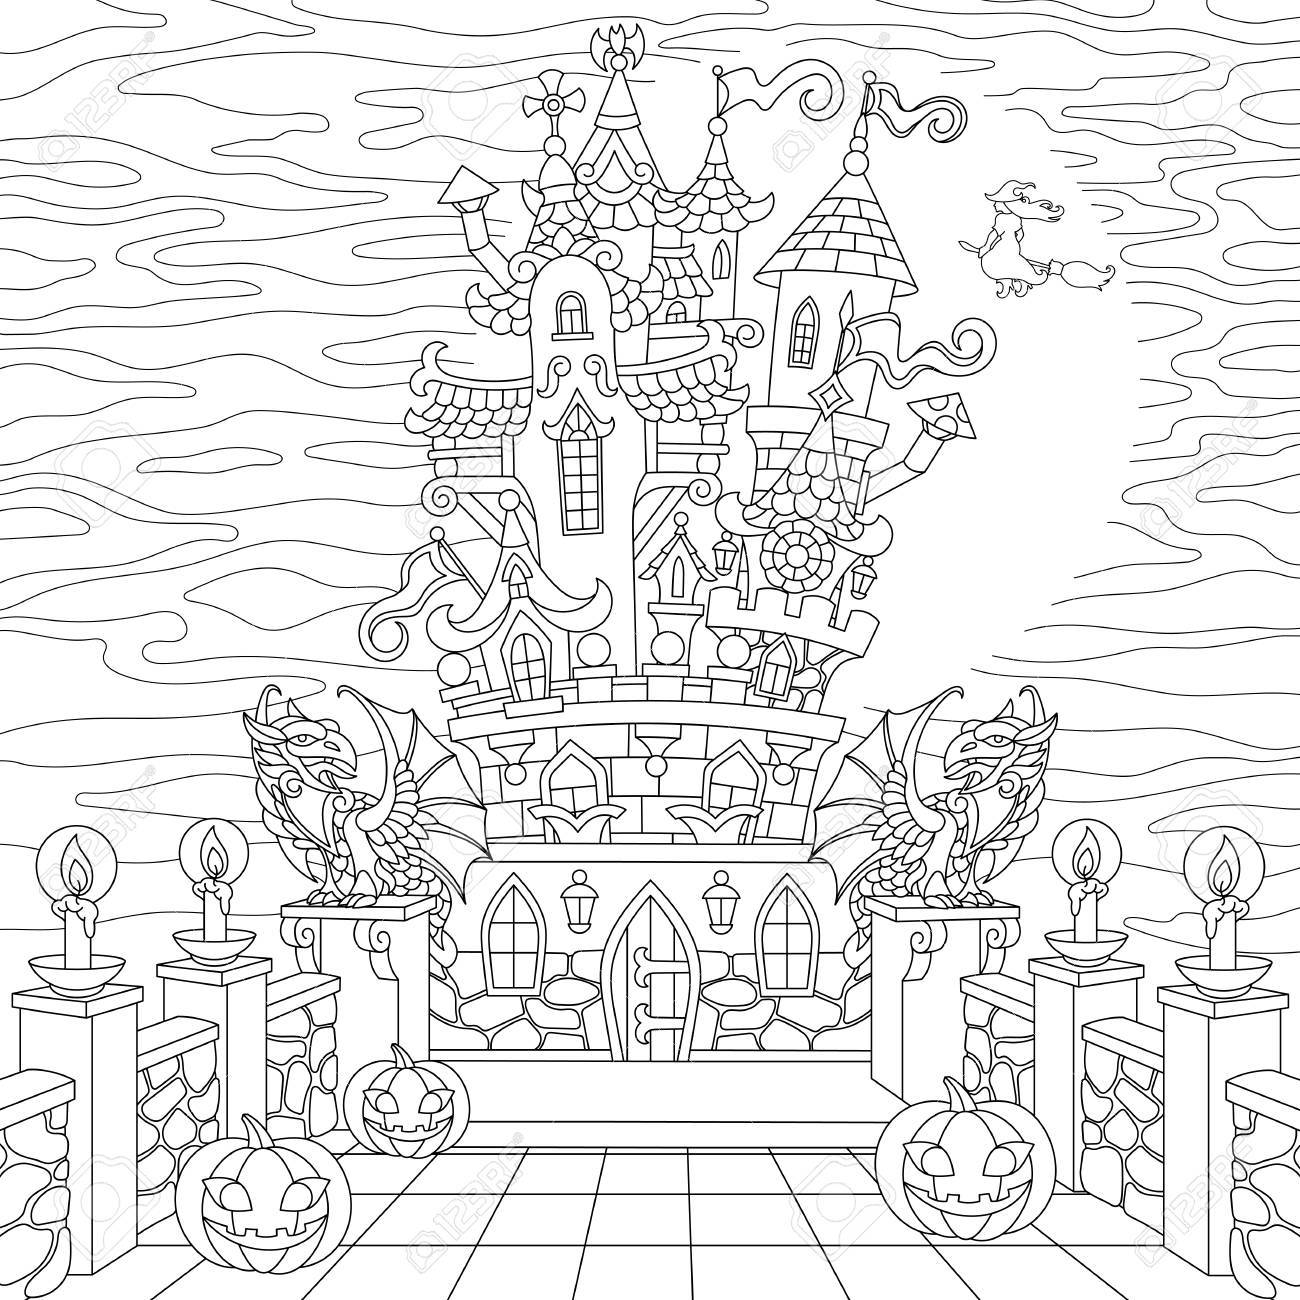 Halloween Coloring Page. Spooky Castle, Halloween Pumpkins, Witch ...